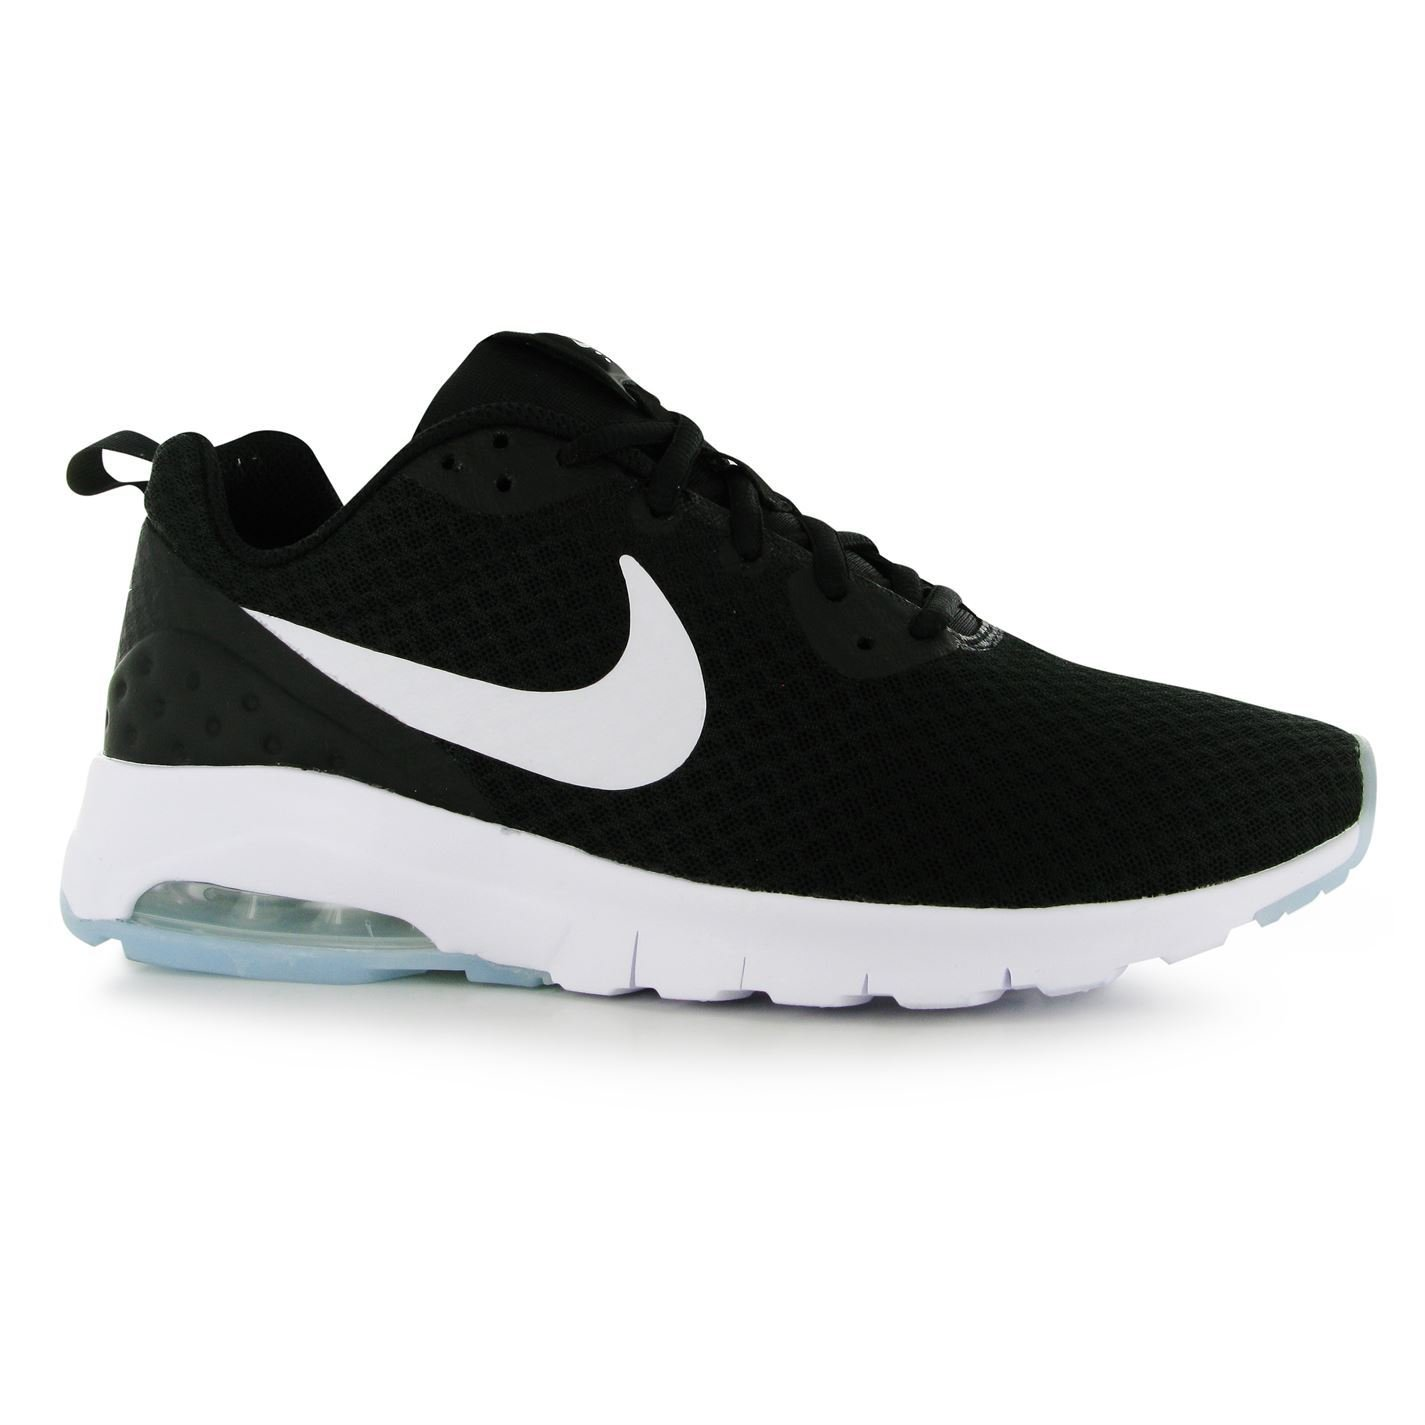 daad42720ba573 ... Amazon.com Nike Air Max Motion Lightweight Training Shoes Mens Black  Wht Trainers Sneakers ...